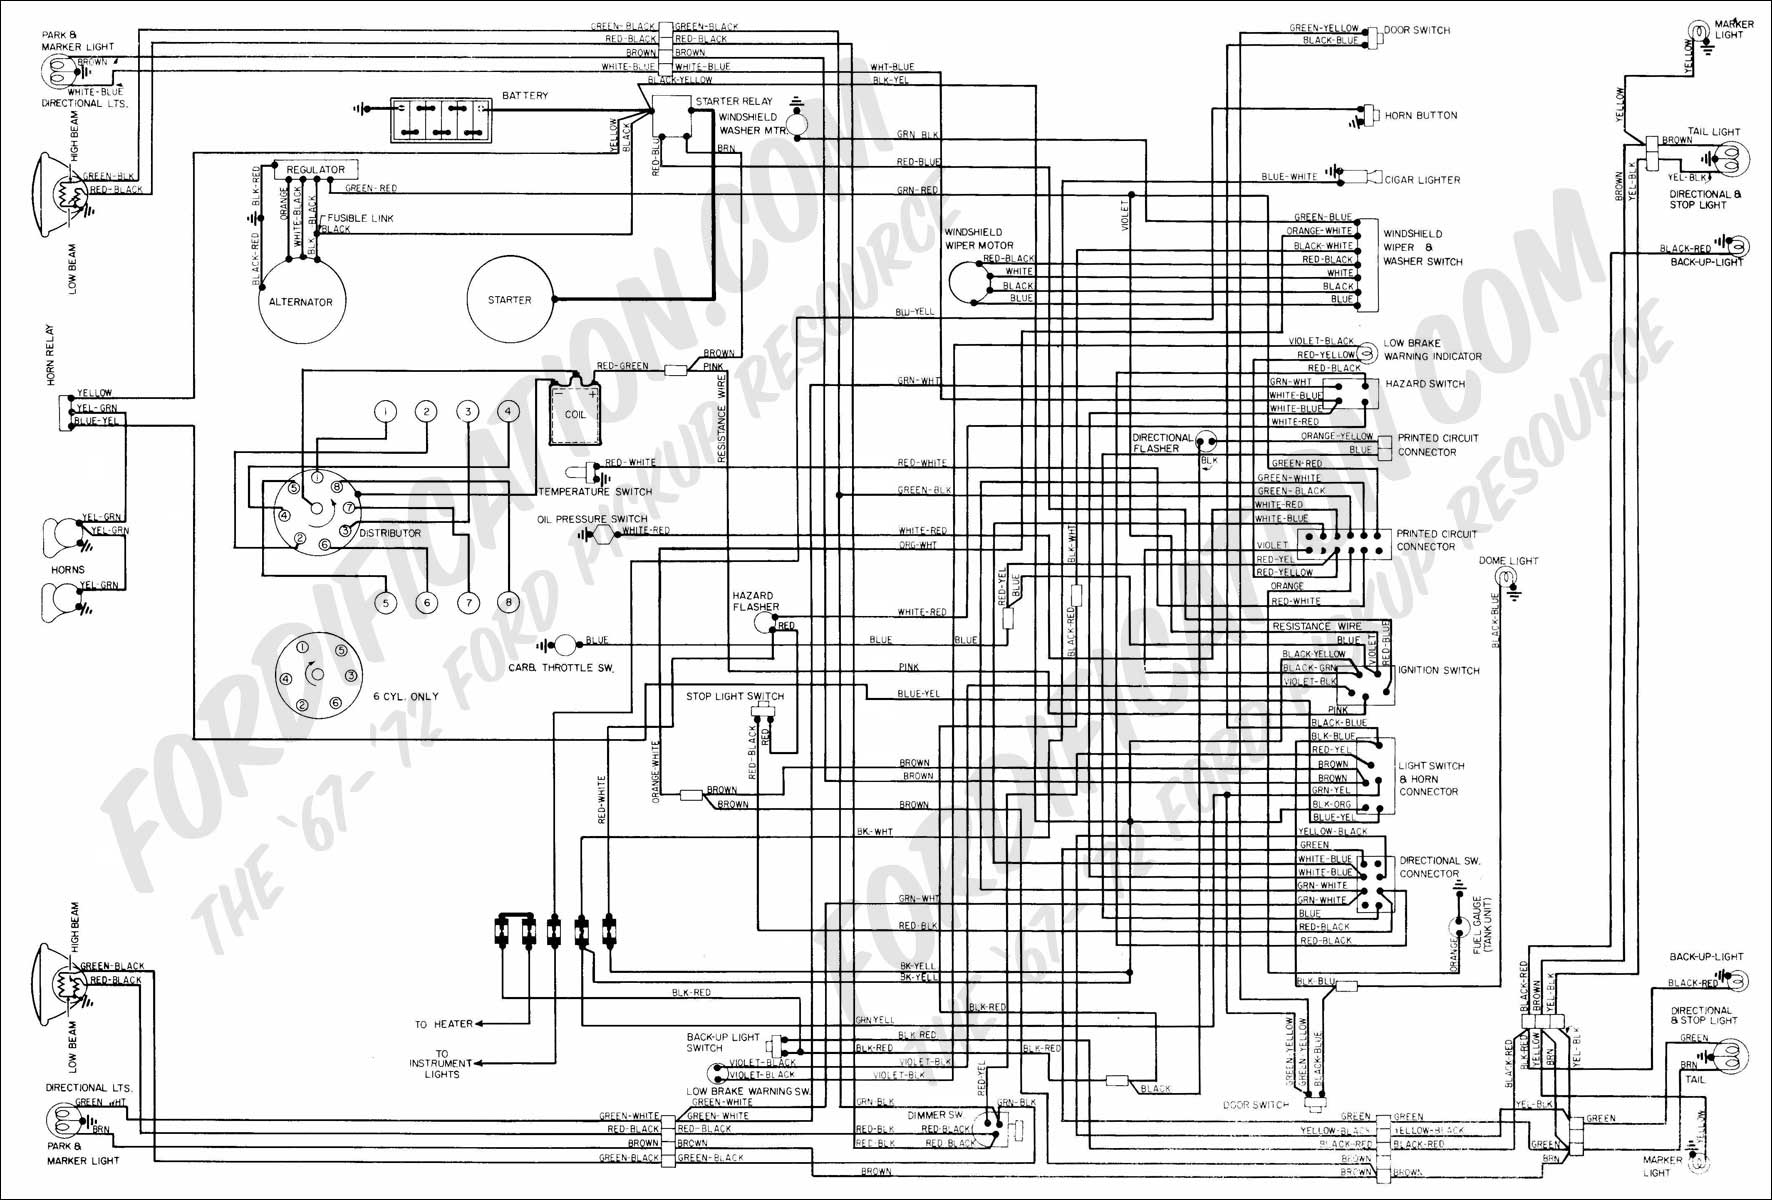 ford wiring schematic ju davidforlife de \u2022 schematic wiring diagram connectors ford electrical diagrams wiring diagram name rh 17 17 6 art brut creation de ford wiring schematic symbols ford wiring schematic symbols